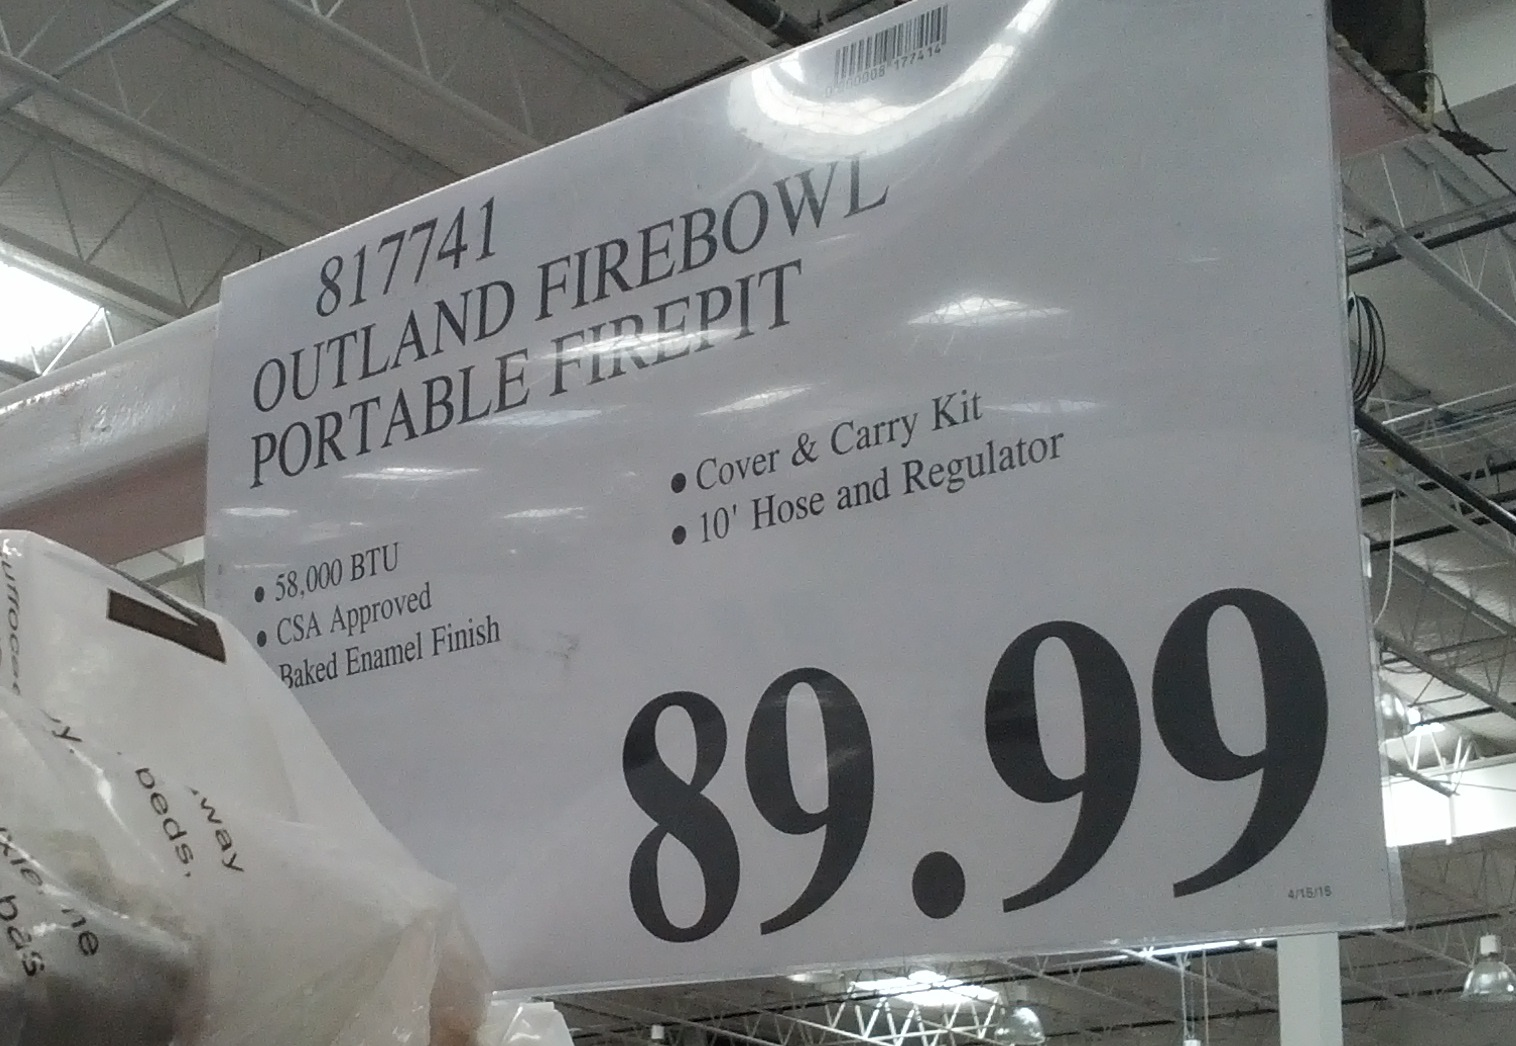 Outland Firebowl Deluxe Portable Firepit | Costco Weekender on Costco Outdoor Fireplace id=42106